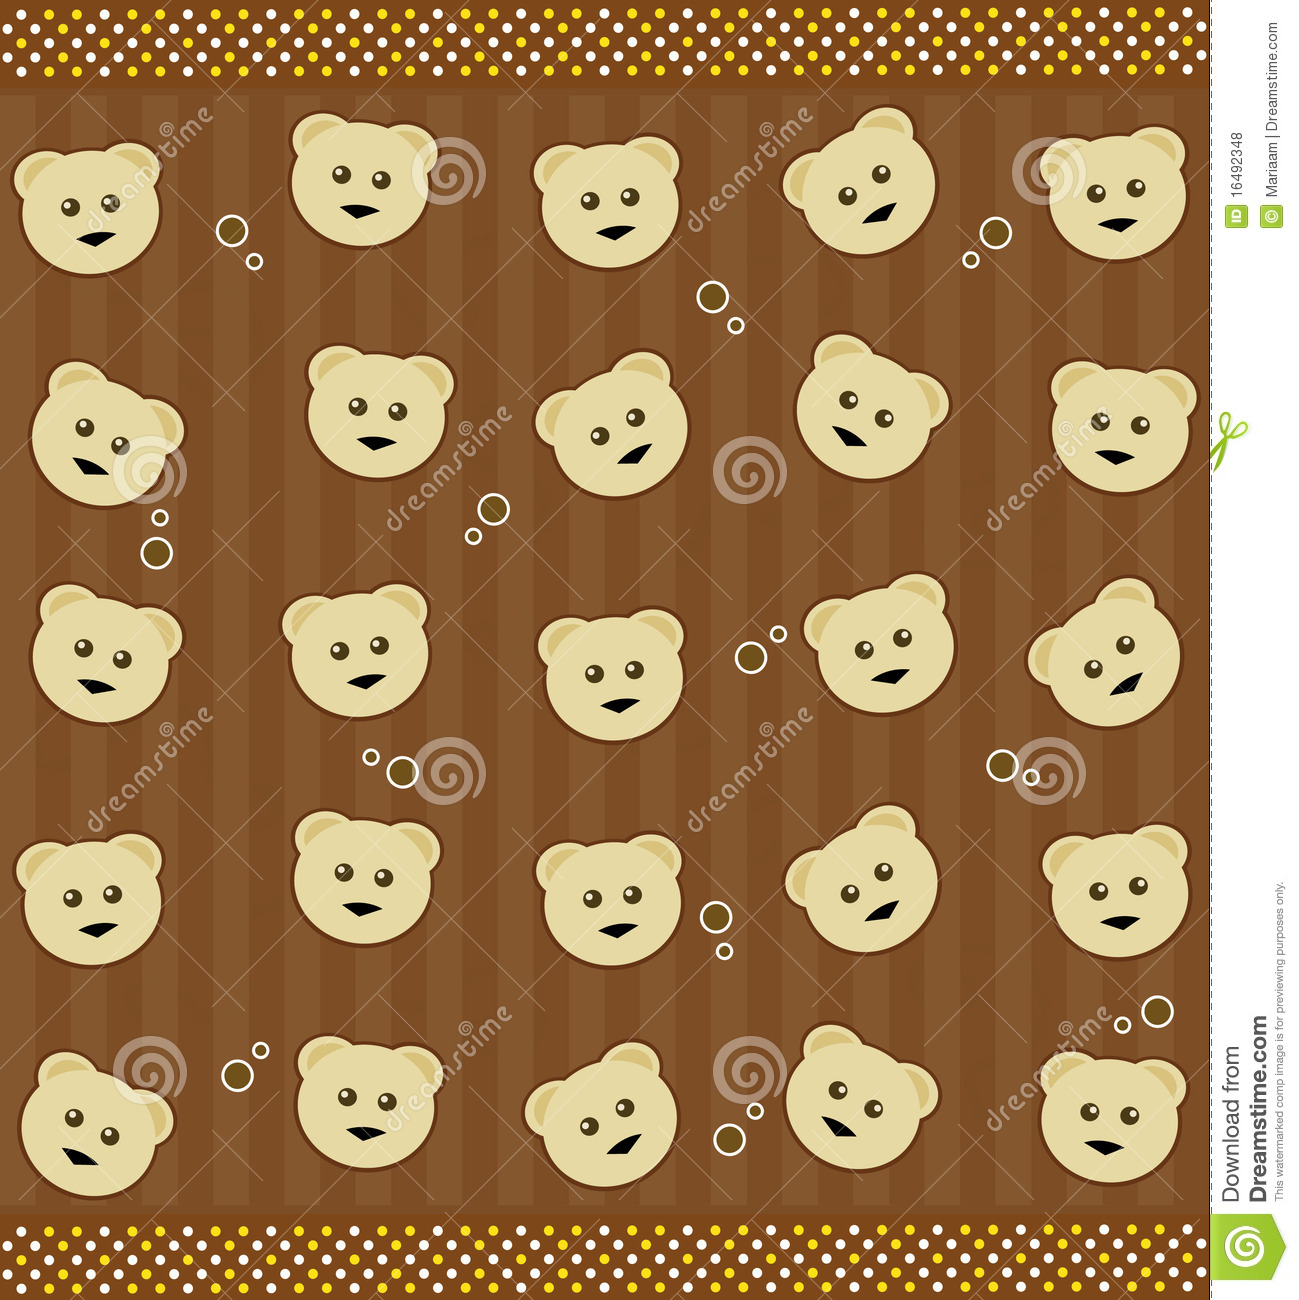 background with teddy bears stock illustration illustration of